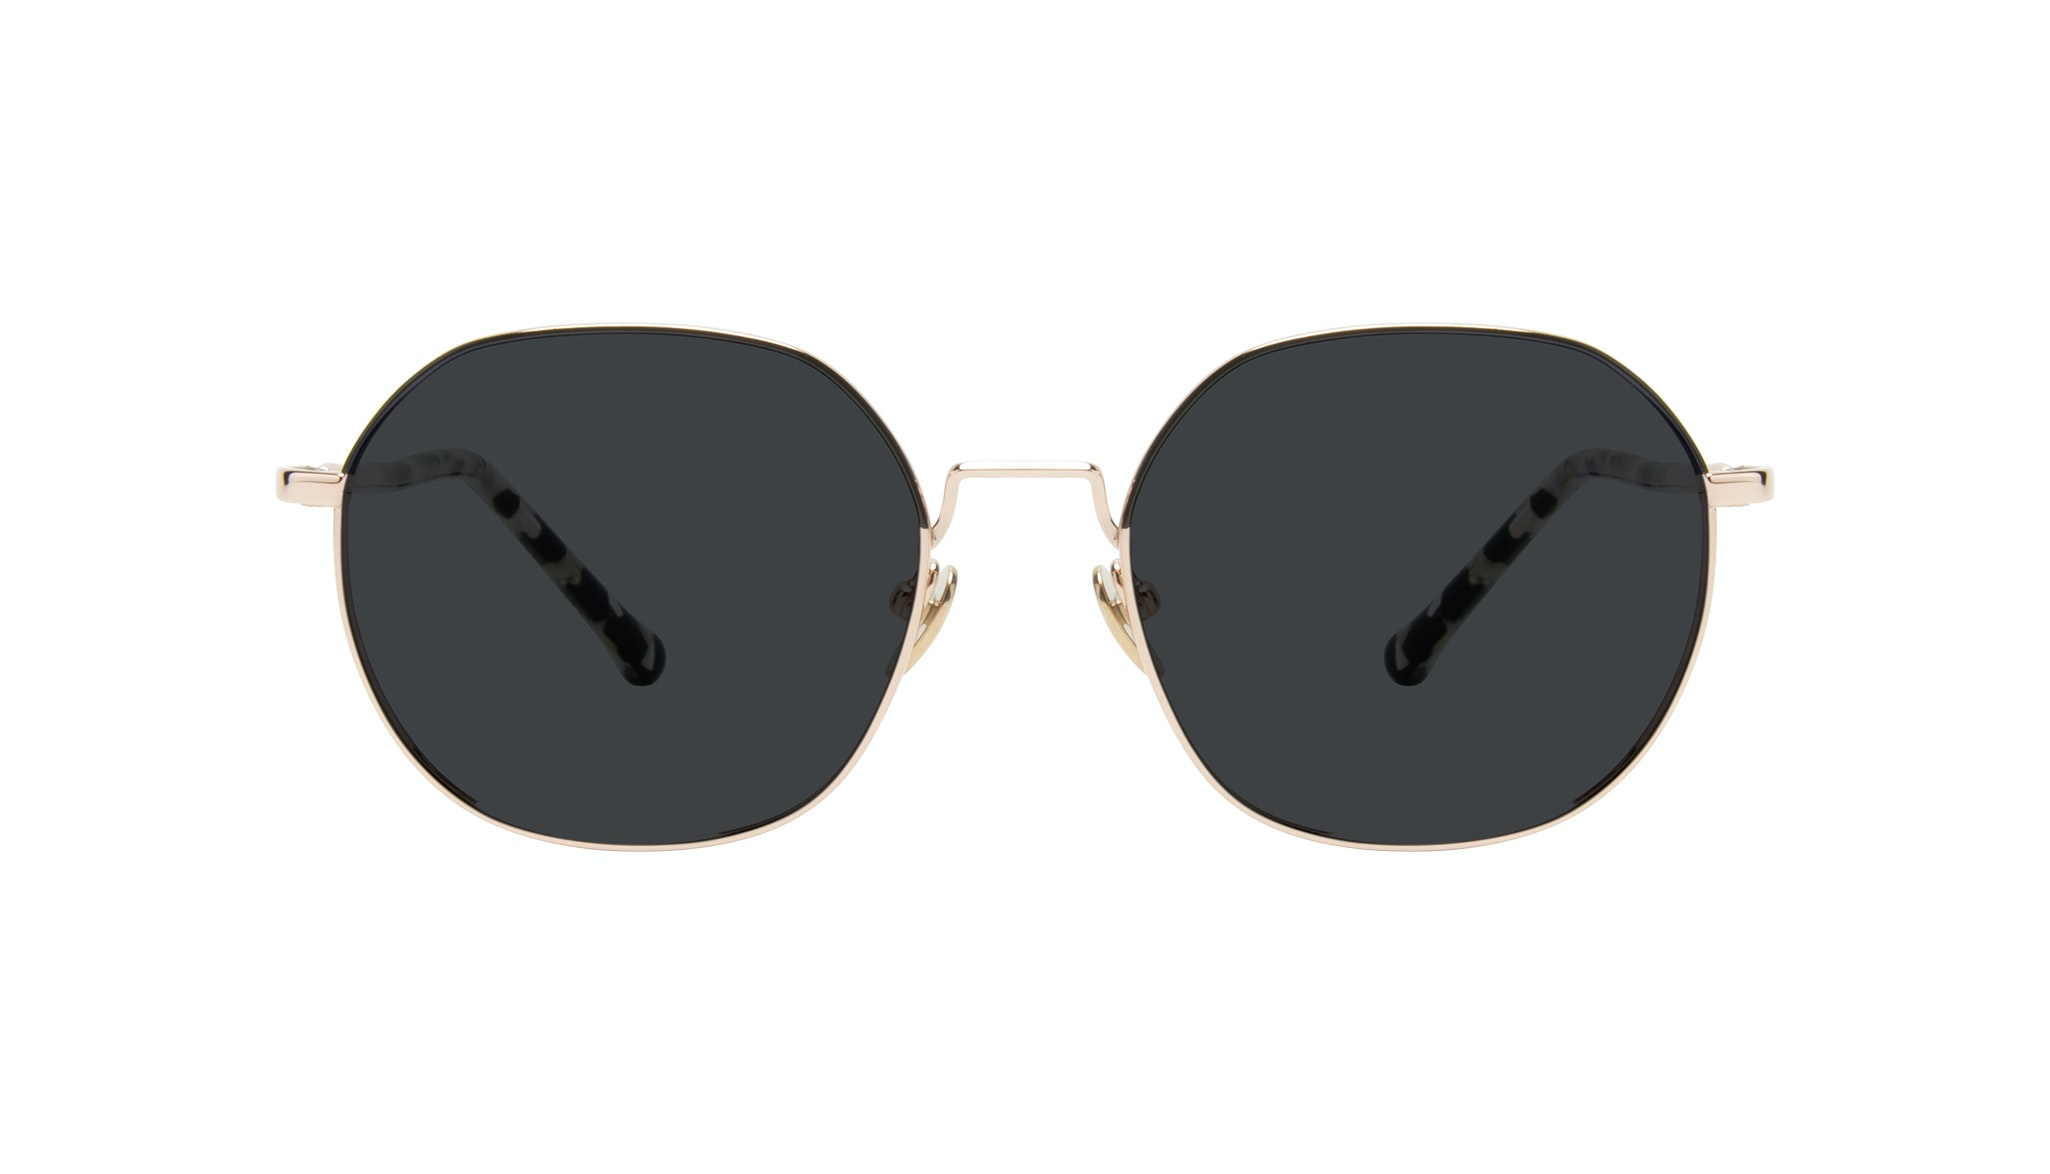 Affordable Fashion Glasses Round Sunglasses Women Coco Deep Gold